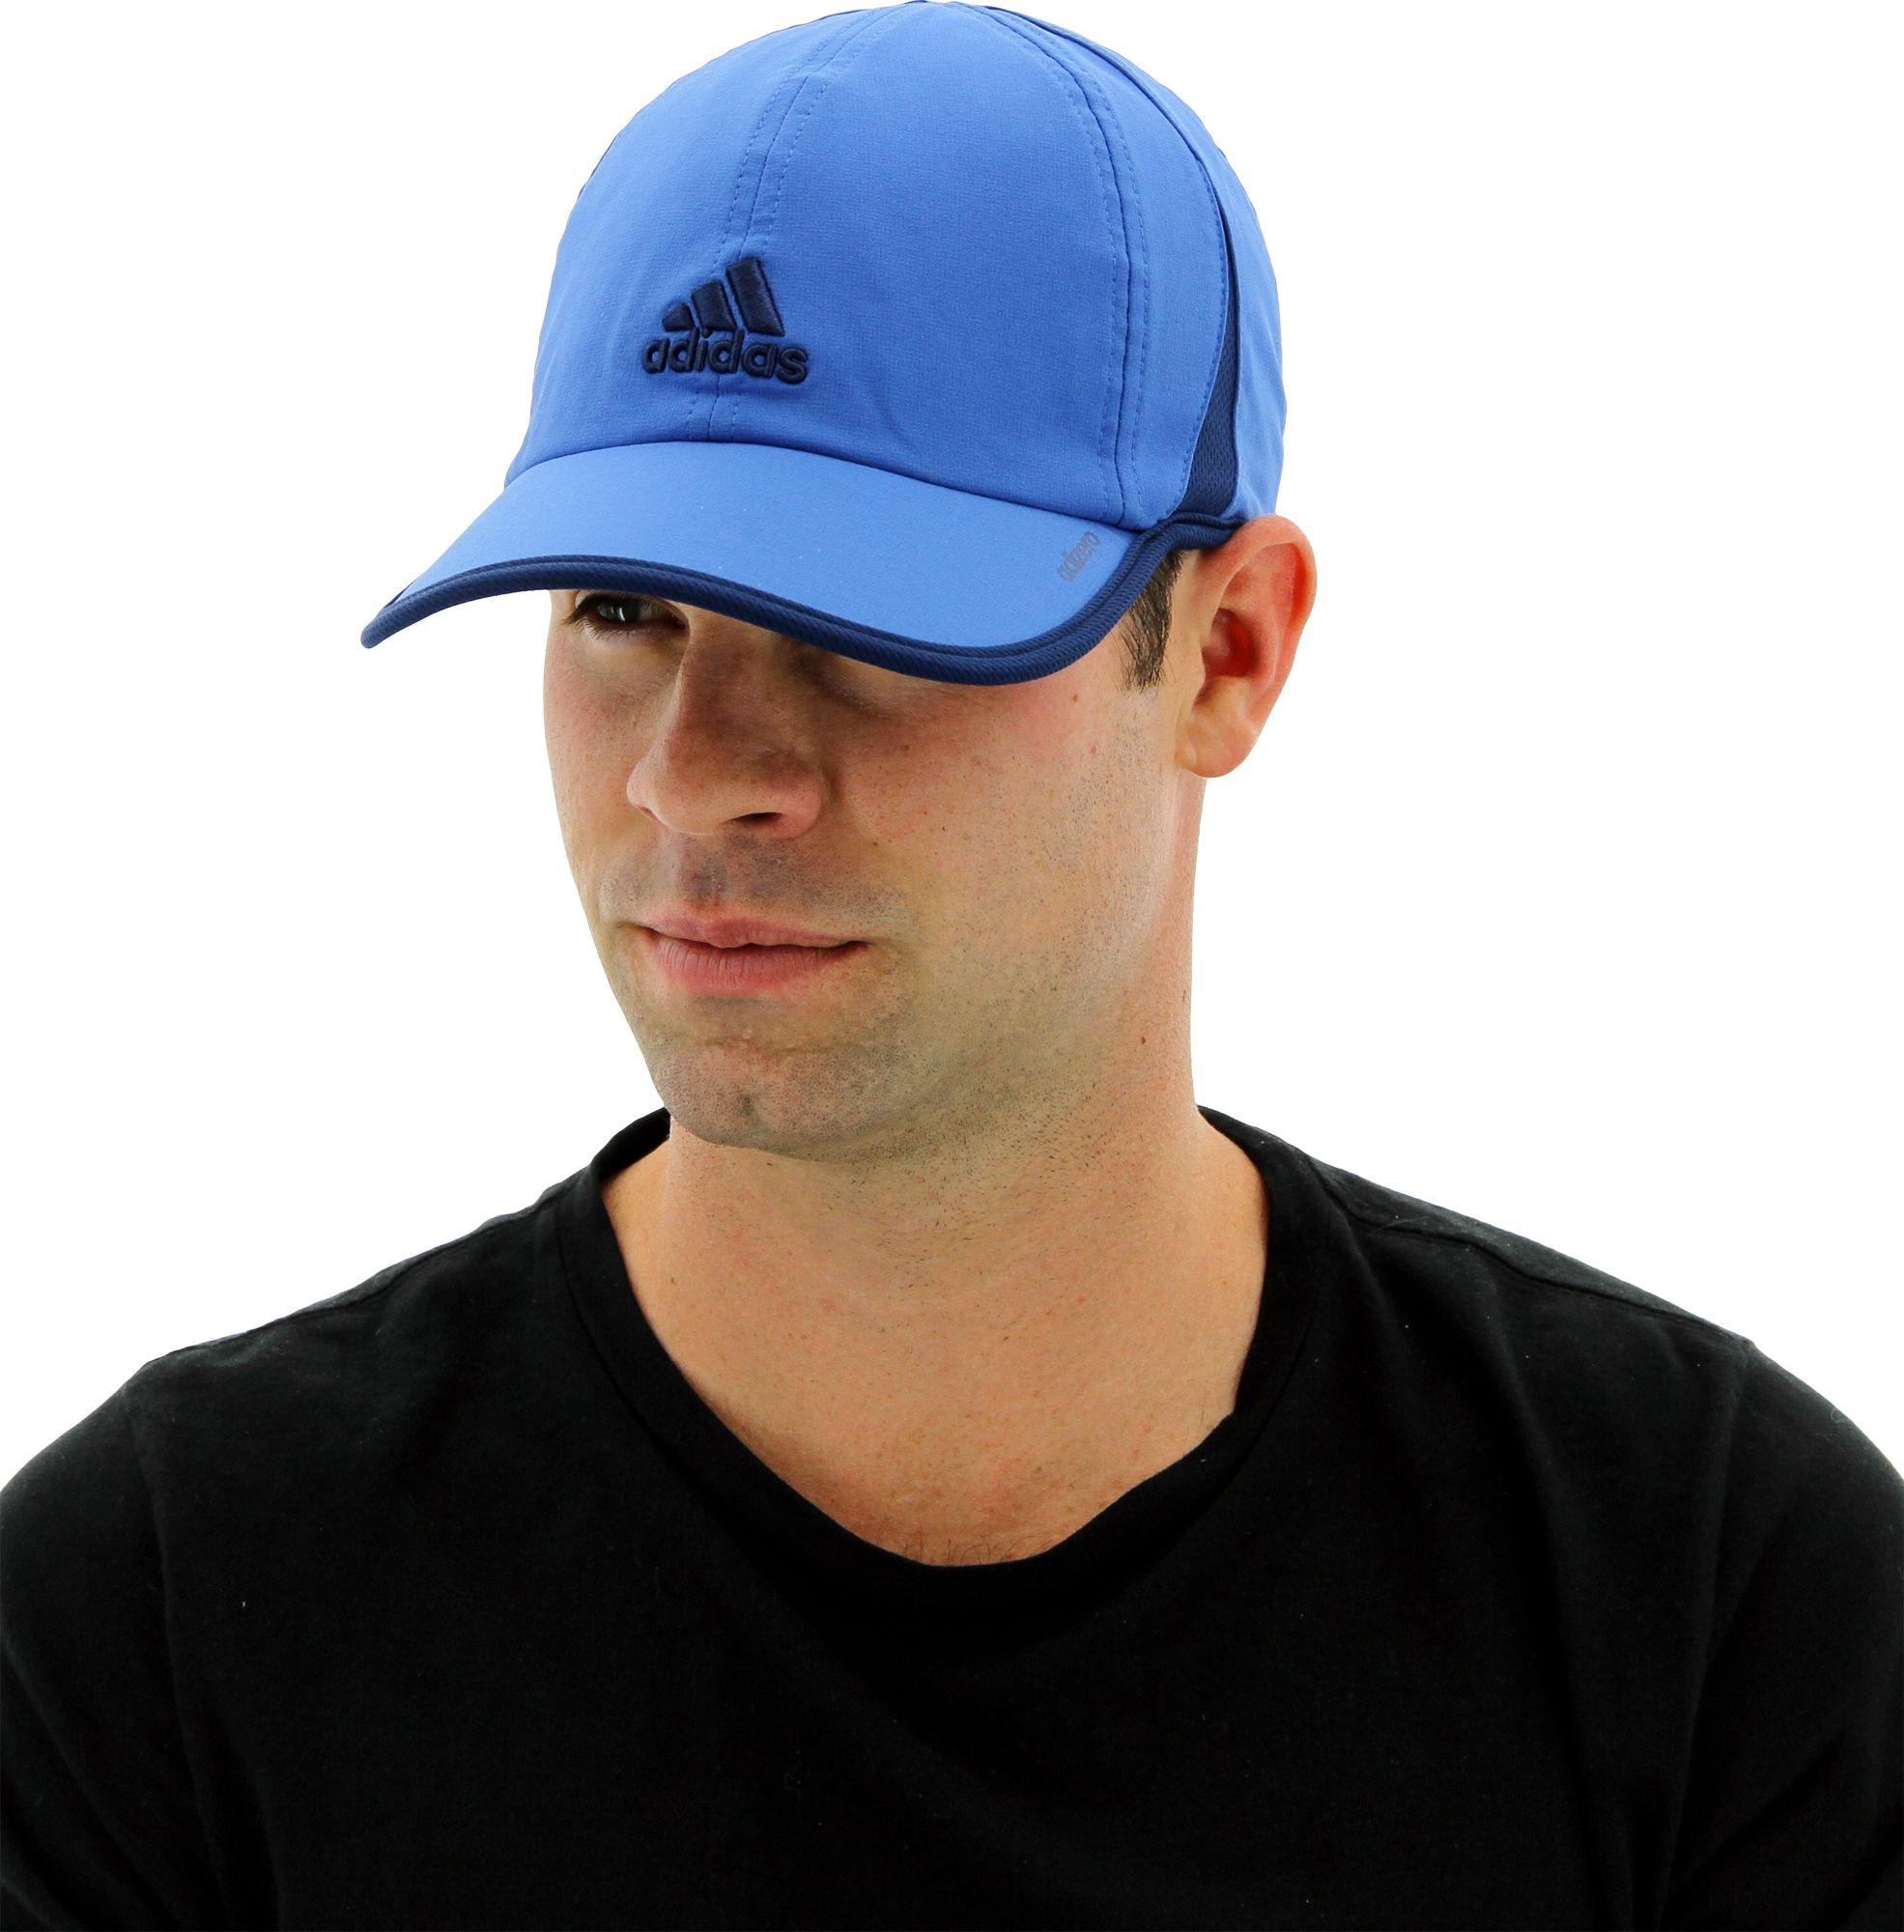 5 Baseball Caps For Men Available In Amazon - Fashion Unlock c9598f696fb